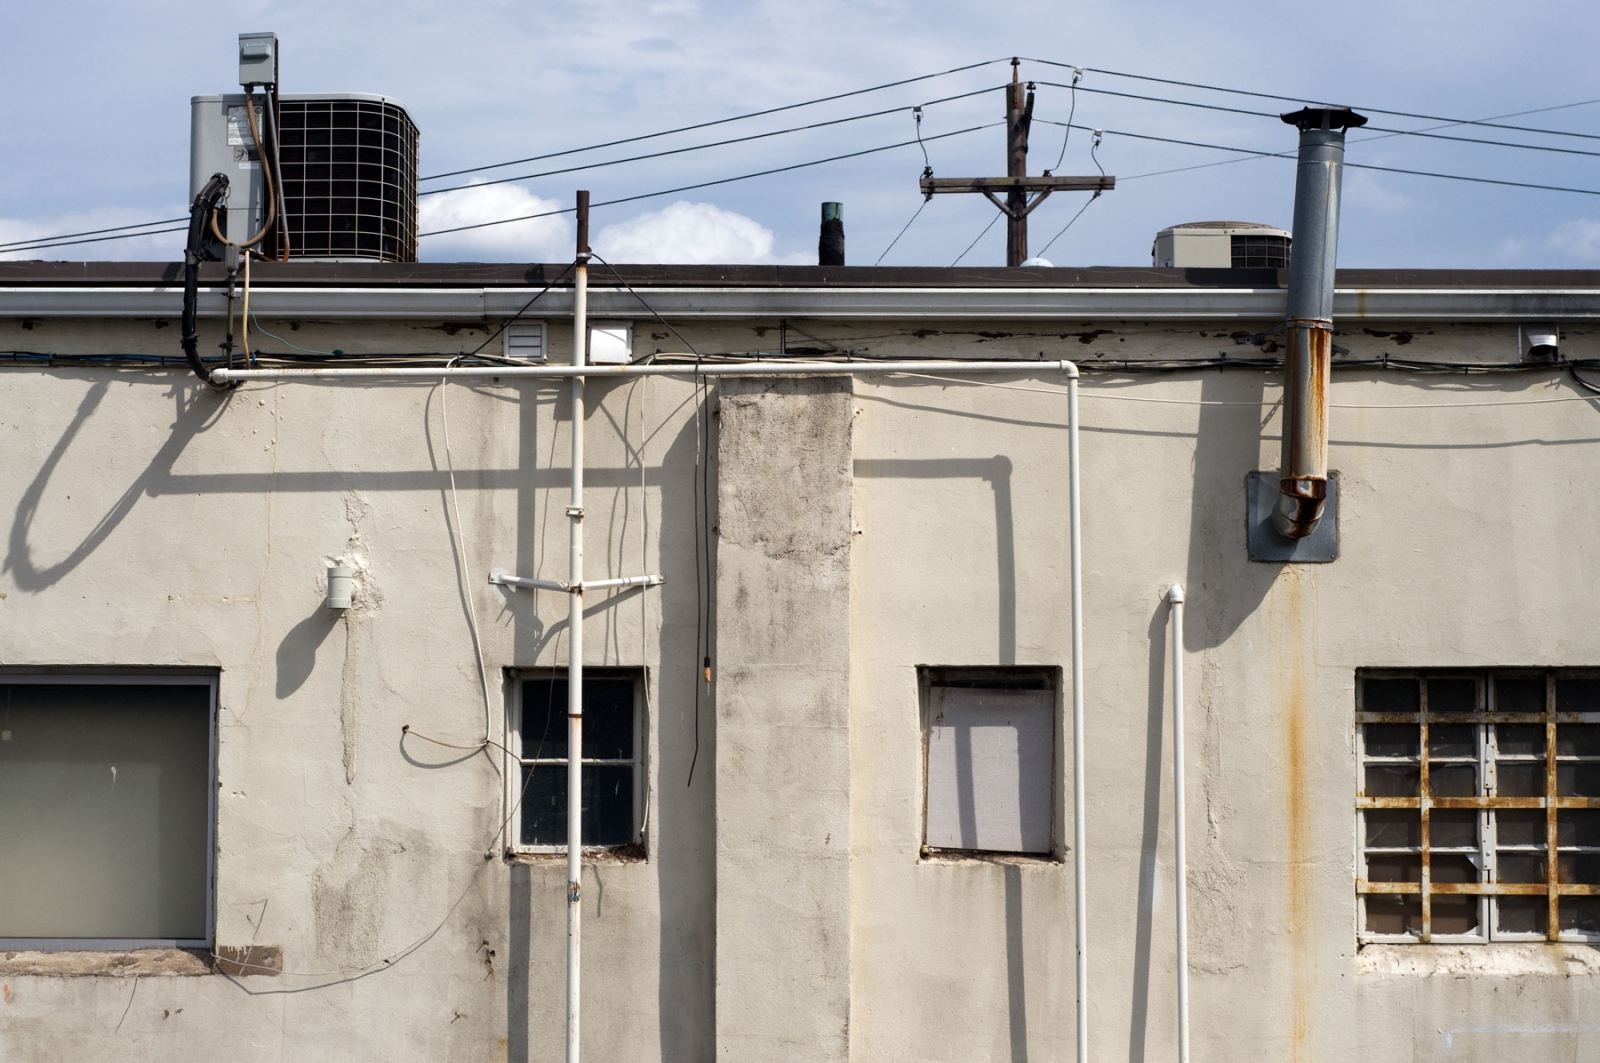 Art and Documentary Photography - Loading building-exterior-tappan-new-york.jpg